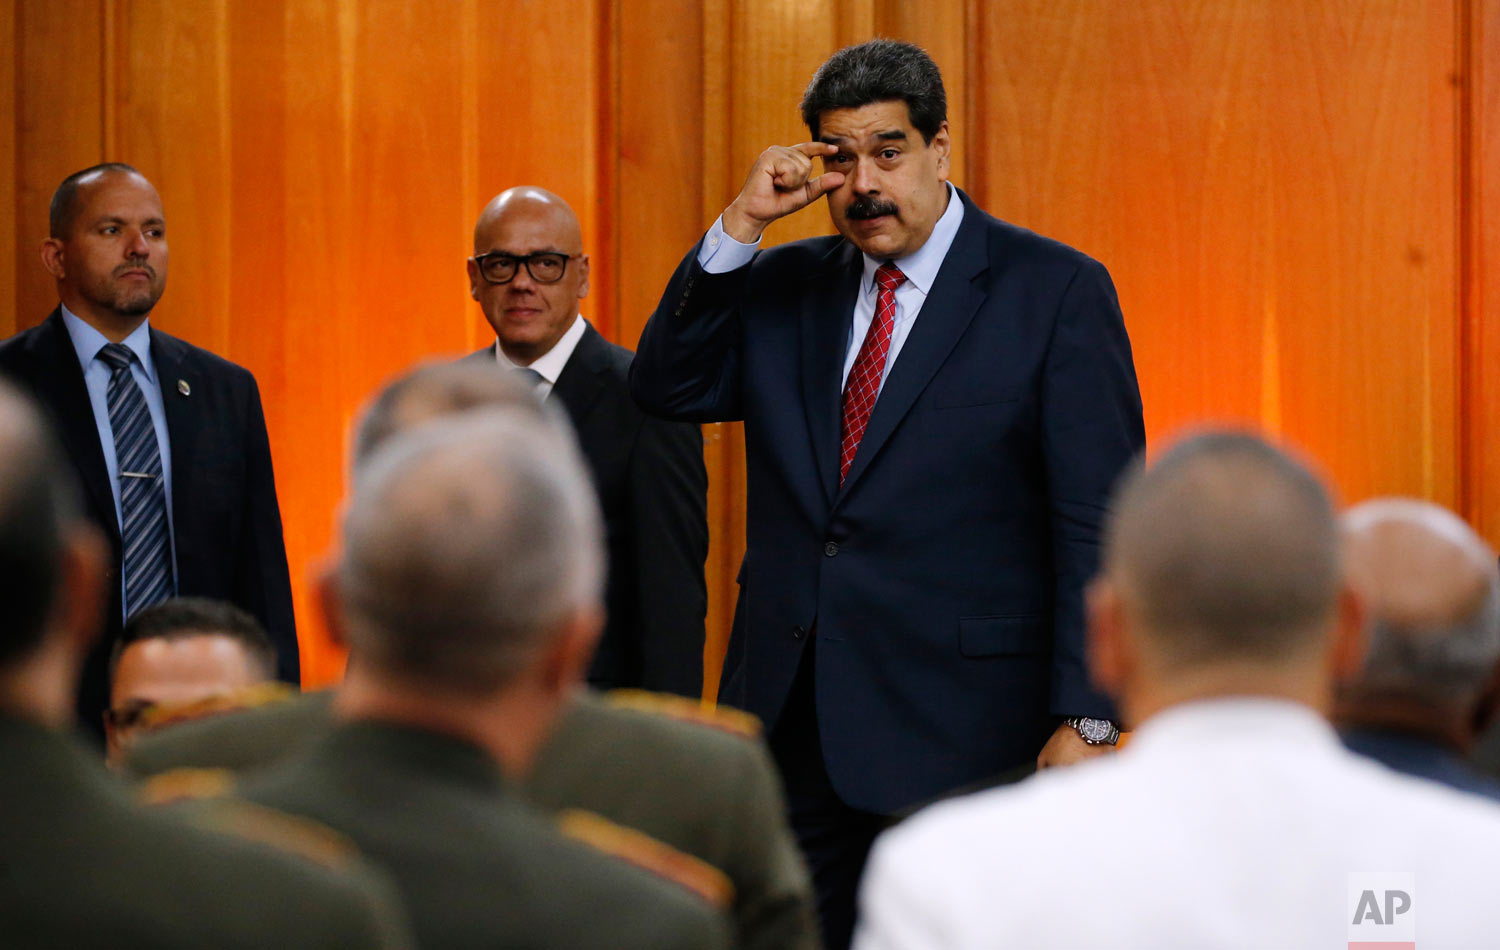 Venezuelan President Nicolas Maduro gestures to military leaders to keep their eyes open, after an opposition leader declared himself interim president, as he leaves a press conference at Miraflores presidential palace in Caracas, Venezuela, Jan. 25, 2019. (AP Photo/Ariana Cubillos)